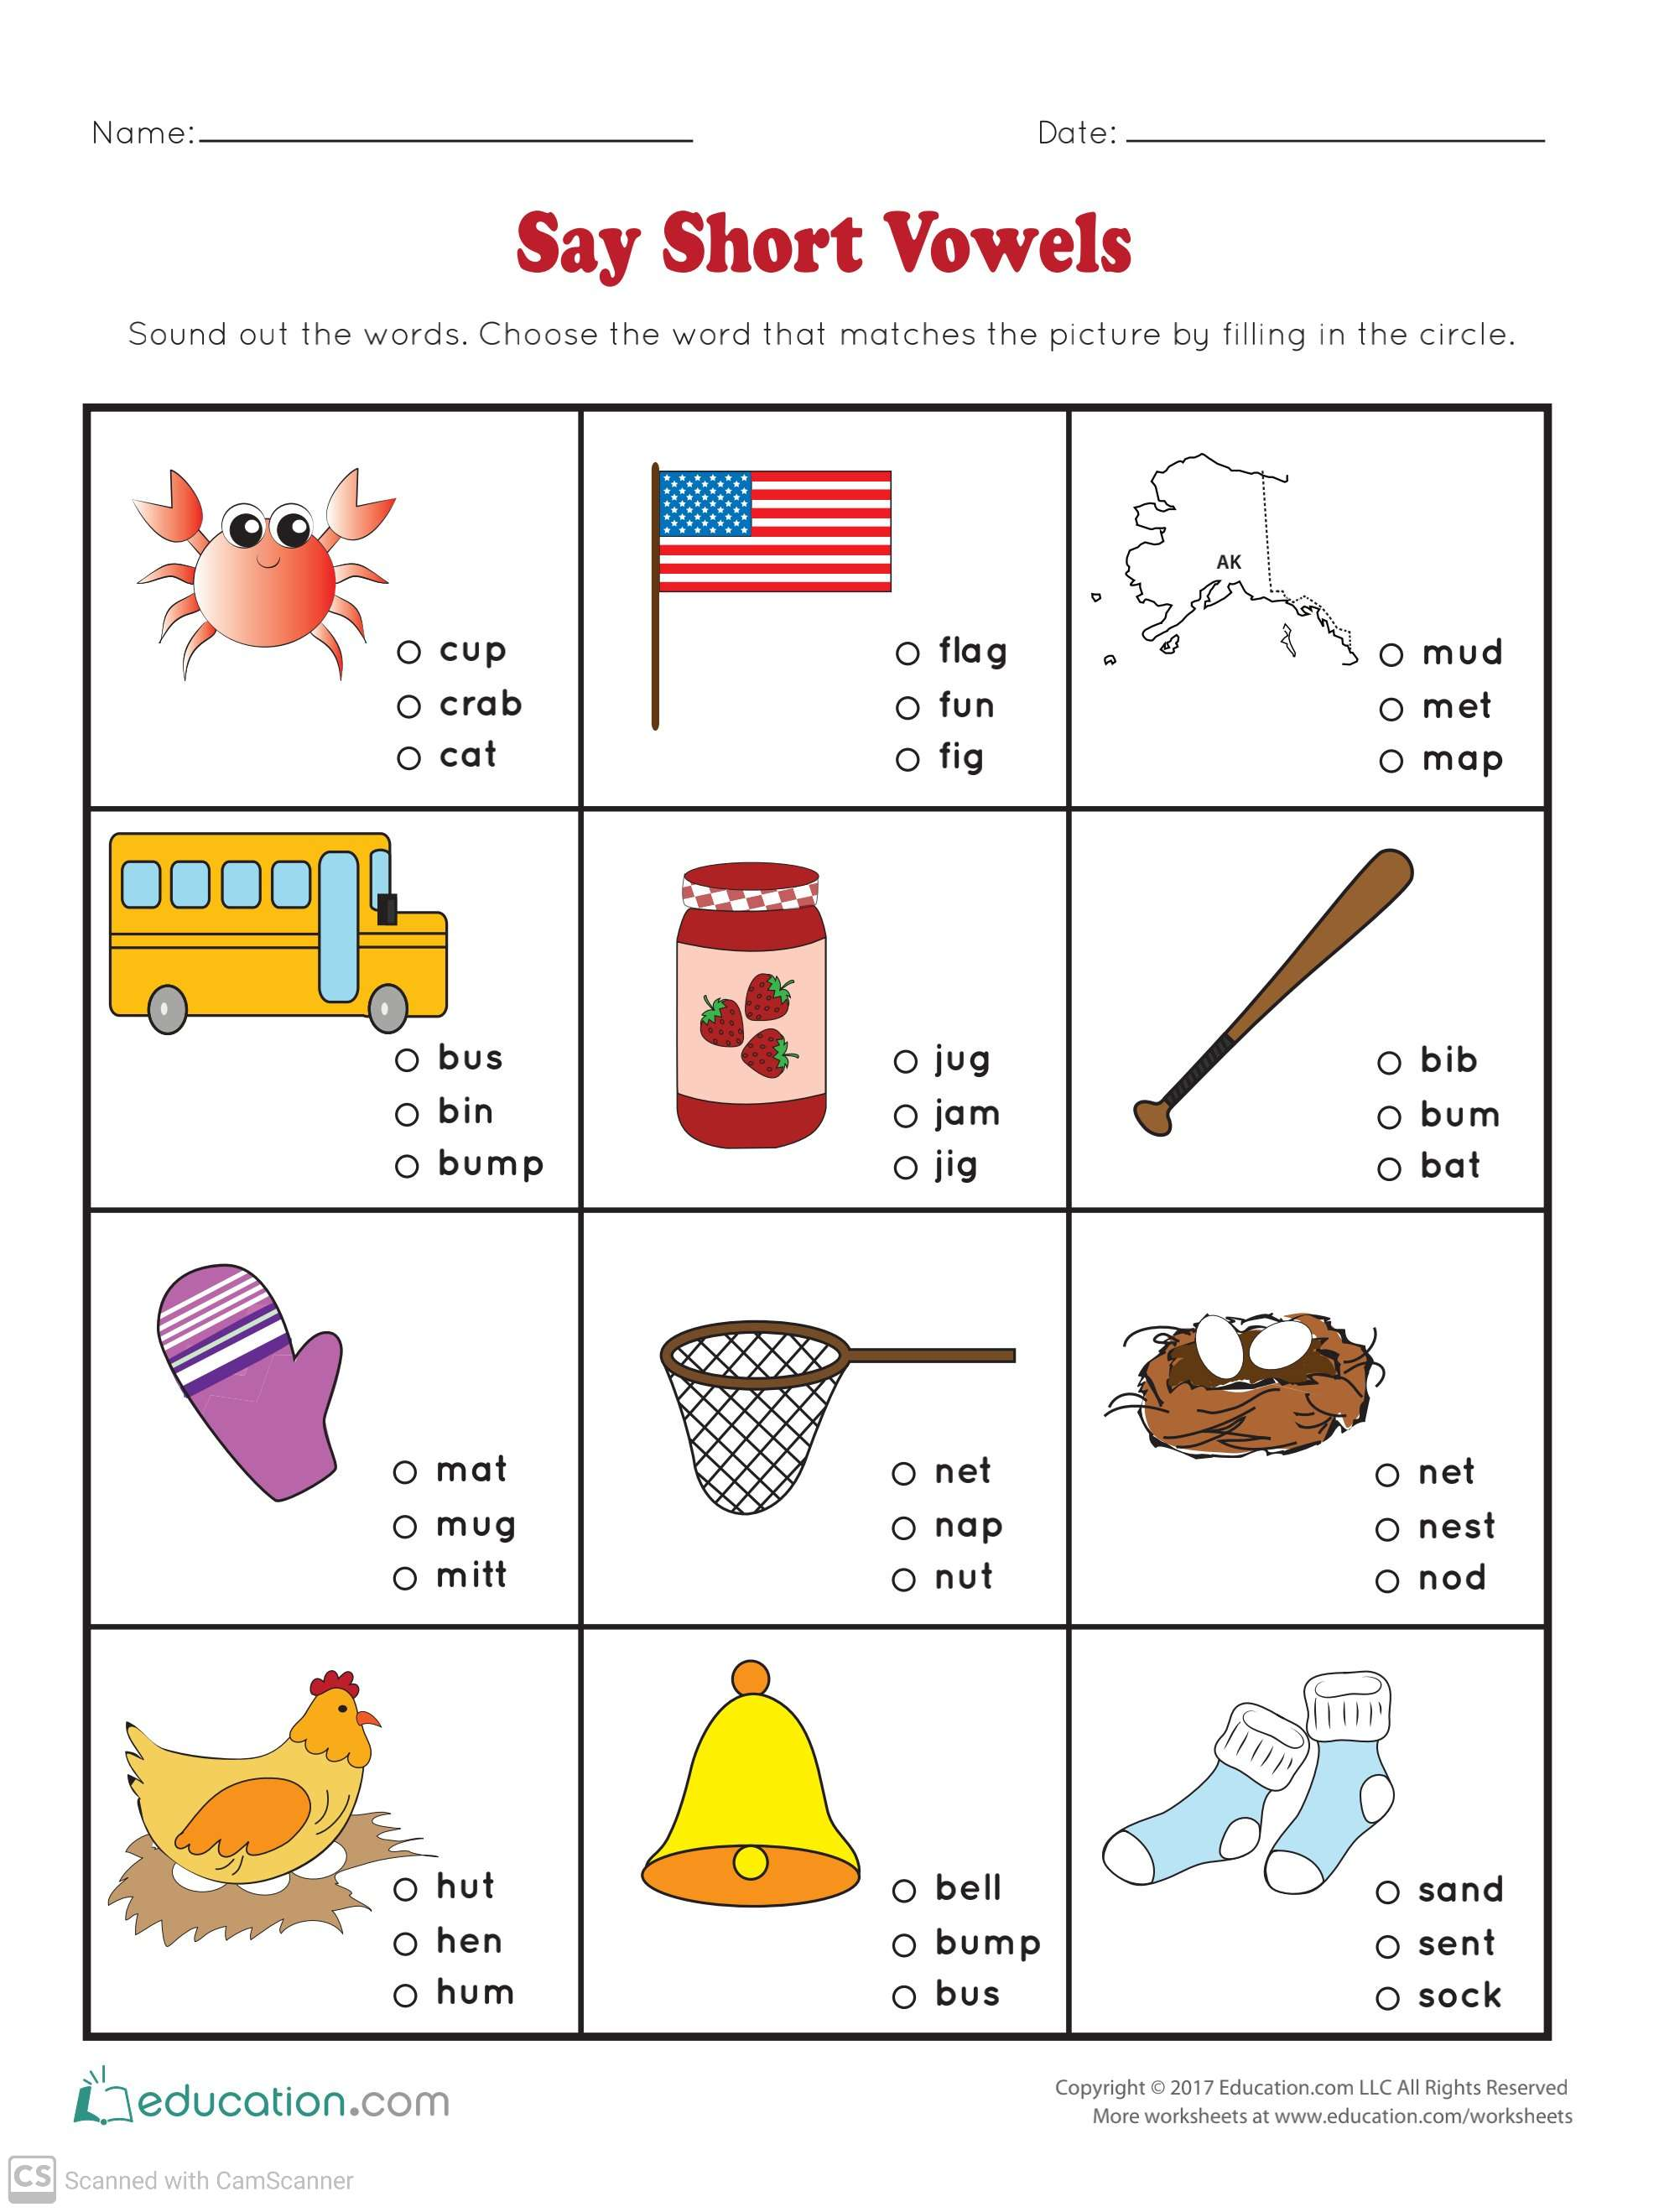 Worksheets For Kindergarten With Answers Teaching Kids